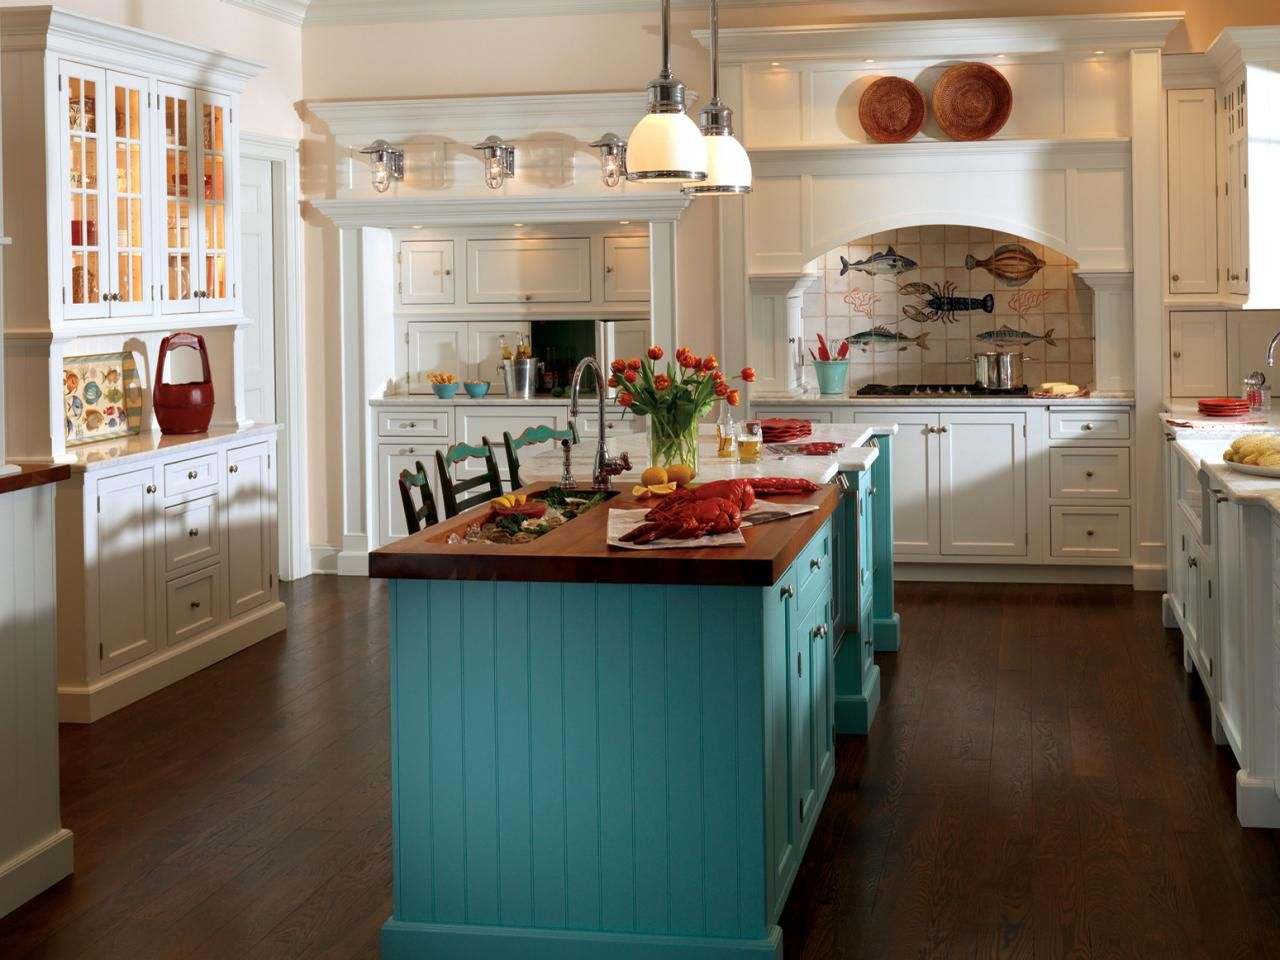 B82944 kitchen cabinets diy kitchens - 10 Ways To Color Your Kitchen Cabinets